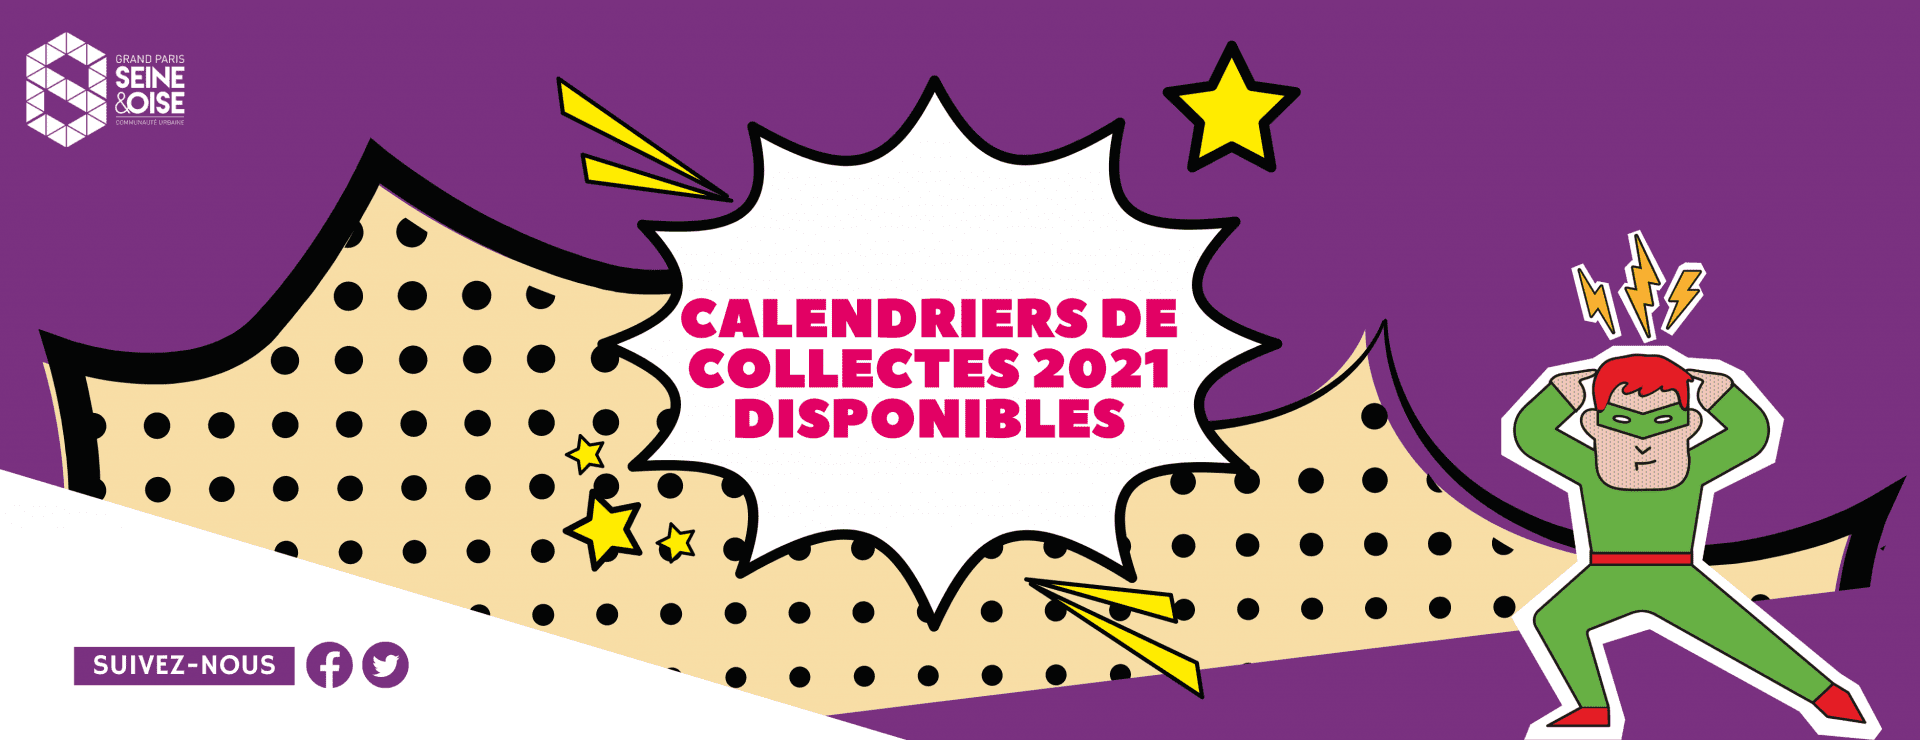 calendriers de collectes 2021